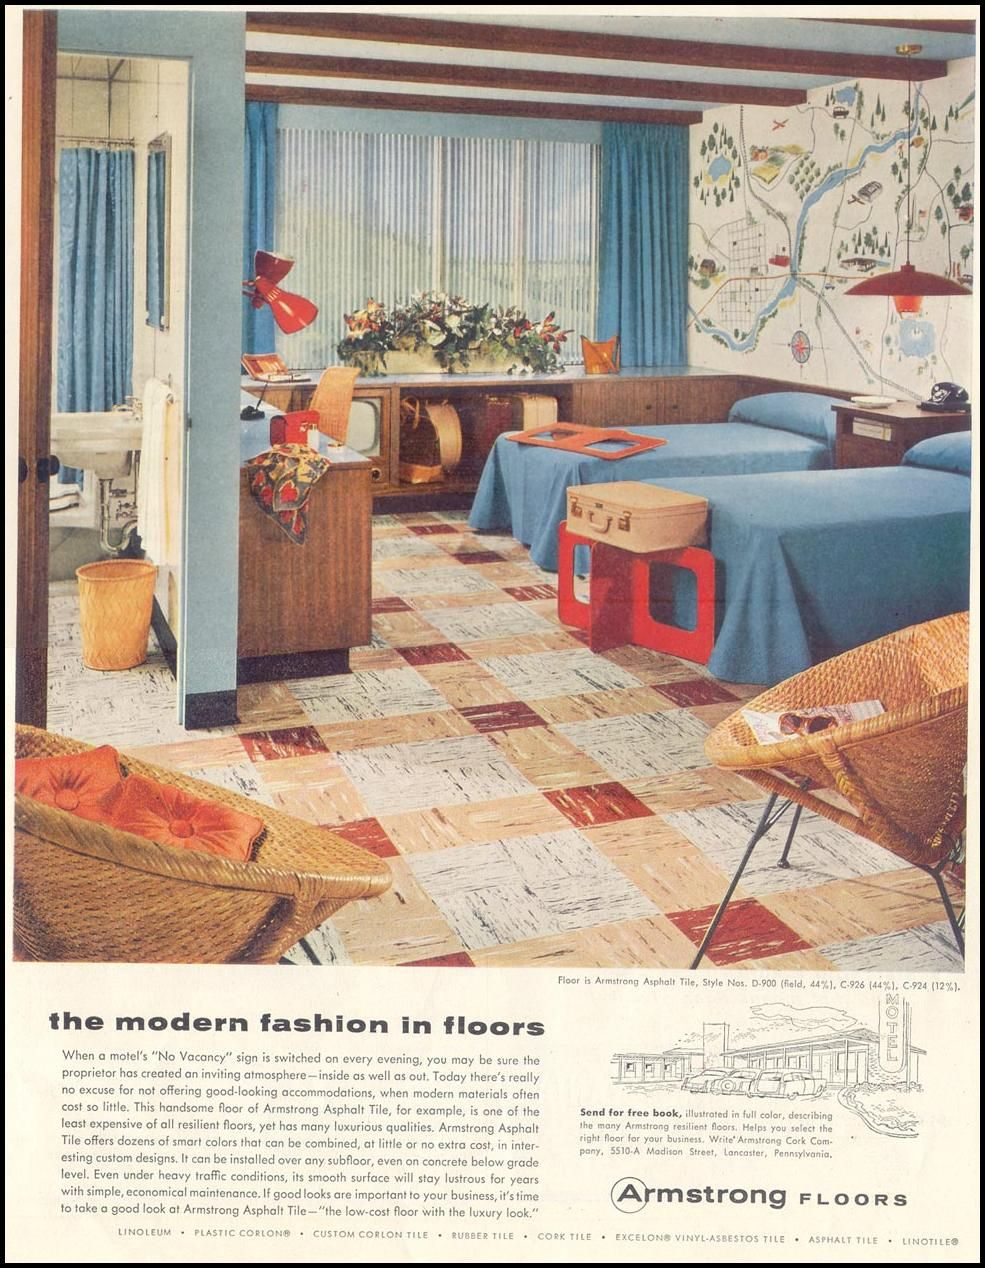 Armstrong Floors Life 10 29 1955 P 11 Vintage Interior